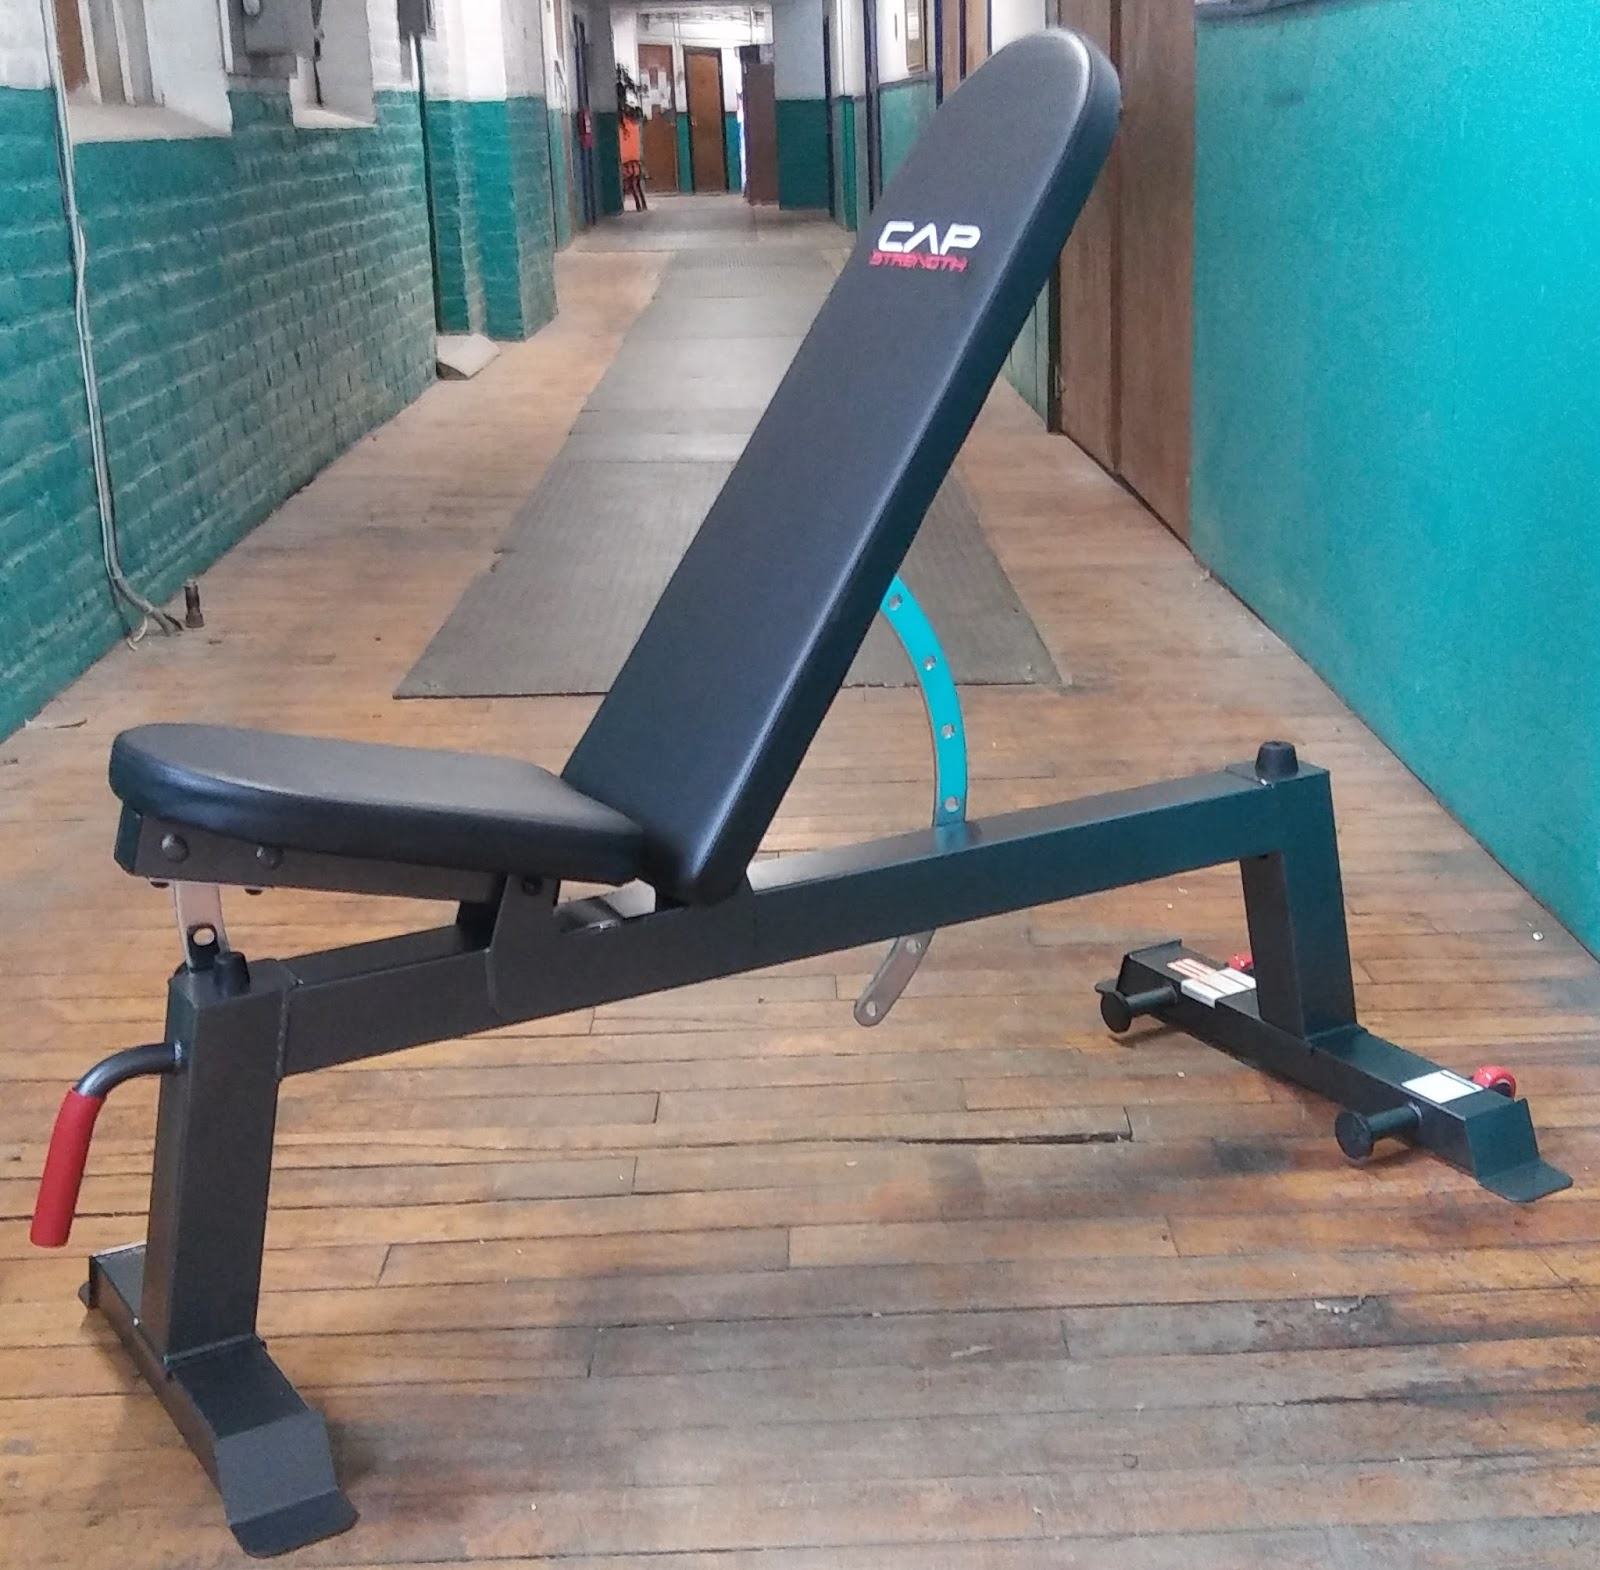 Cap Barbell Deluxe Utility Bench 28 Images Cap Barbell Fm Cb804dx Deluxe Utility Bench